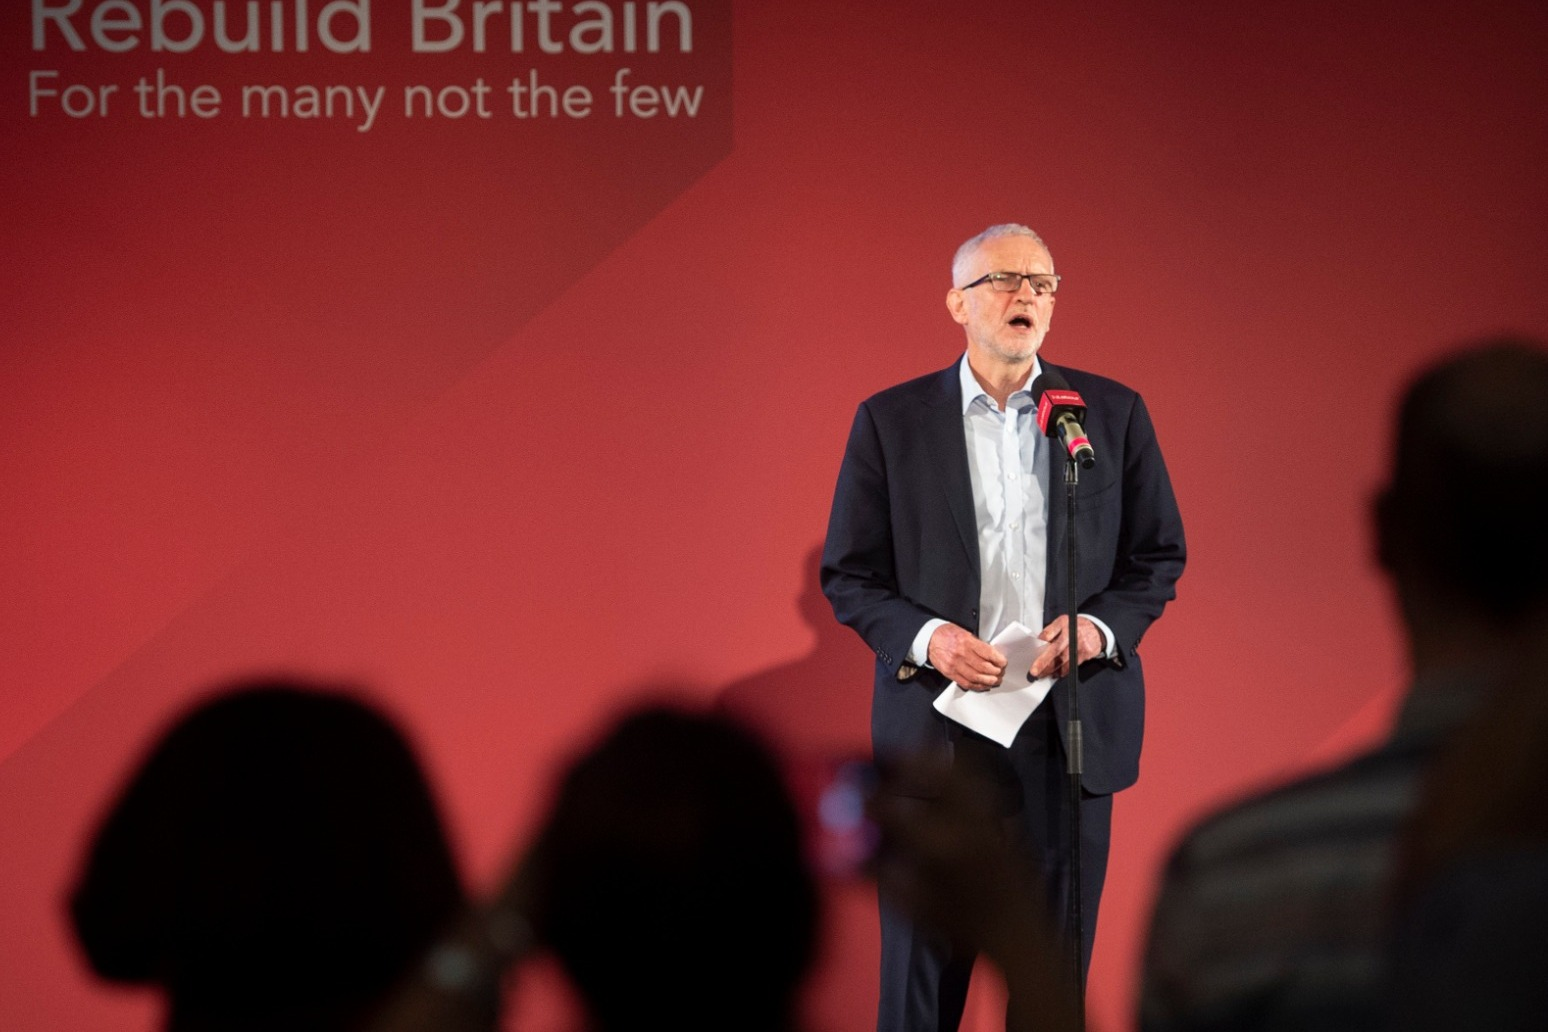 VOTER ID PLANS WILL IMPACT PEOPLE FROM ETHNIC MINORITY BACKGROUNDS, SAYS CORBYN